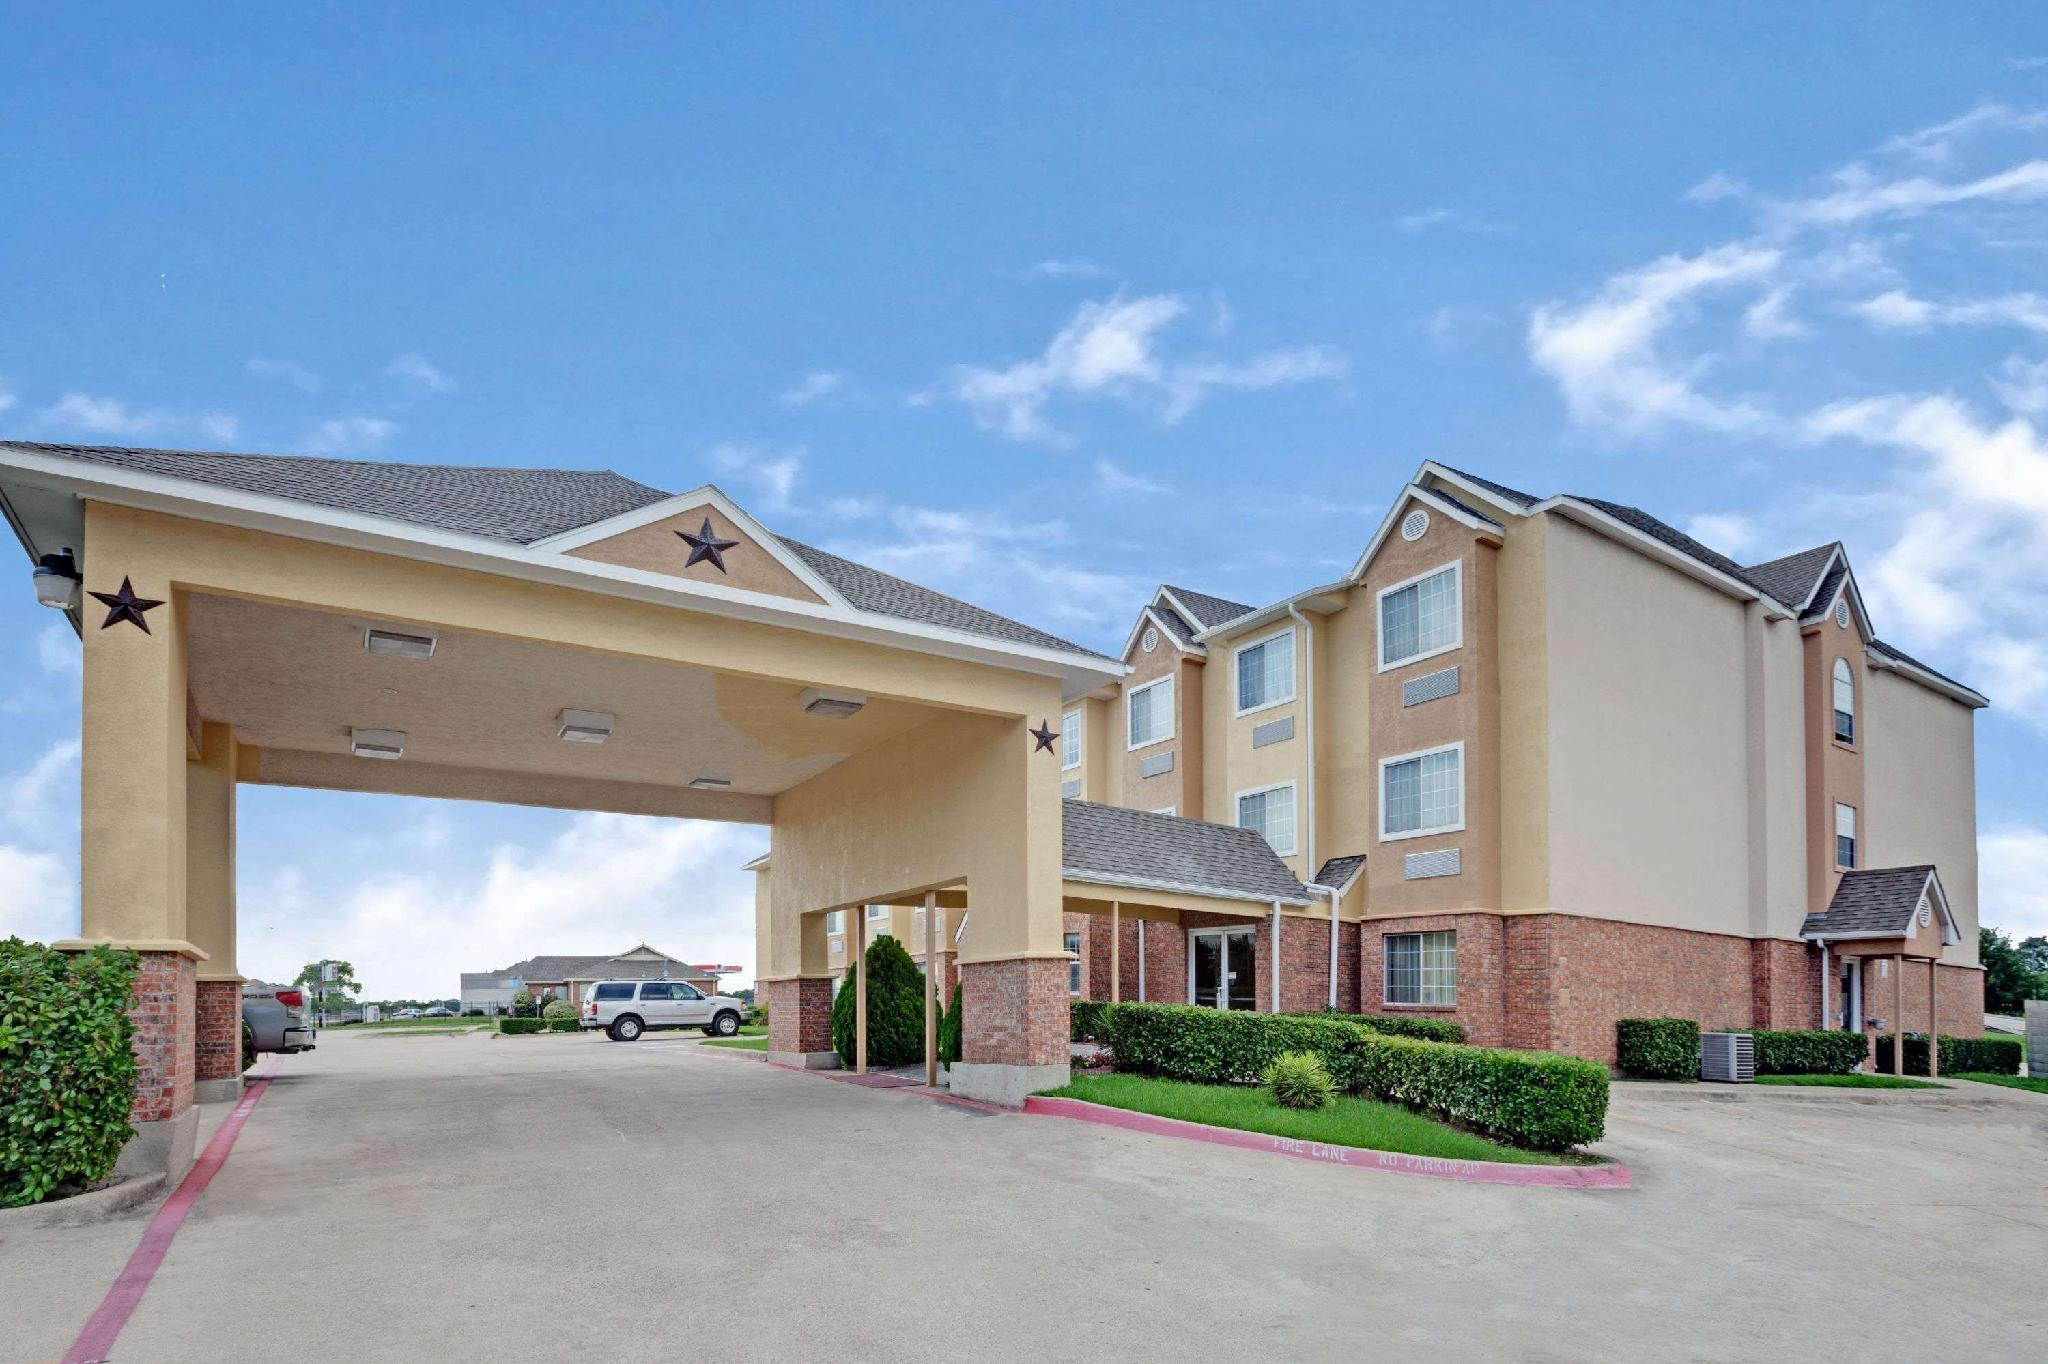 Microtel Inn And Suites By Wyndham Mesquite Dallas At I 30